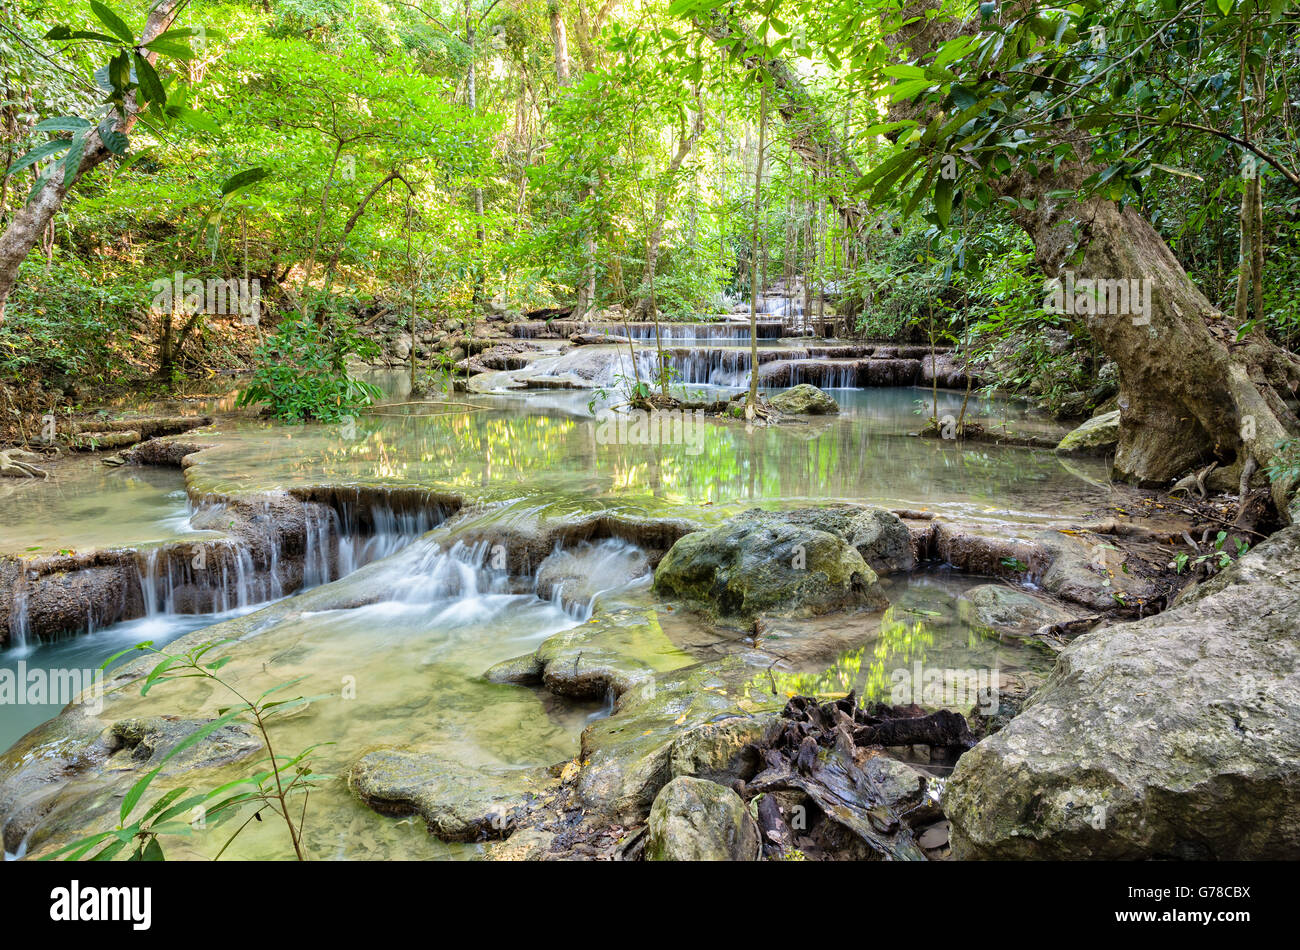 Beautiful waterfall and tropical forests at Erawan National Park is a famous tourist attraction in Kanchanaburi - Stock Image